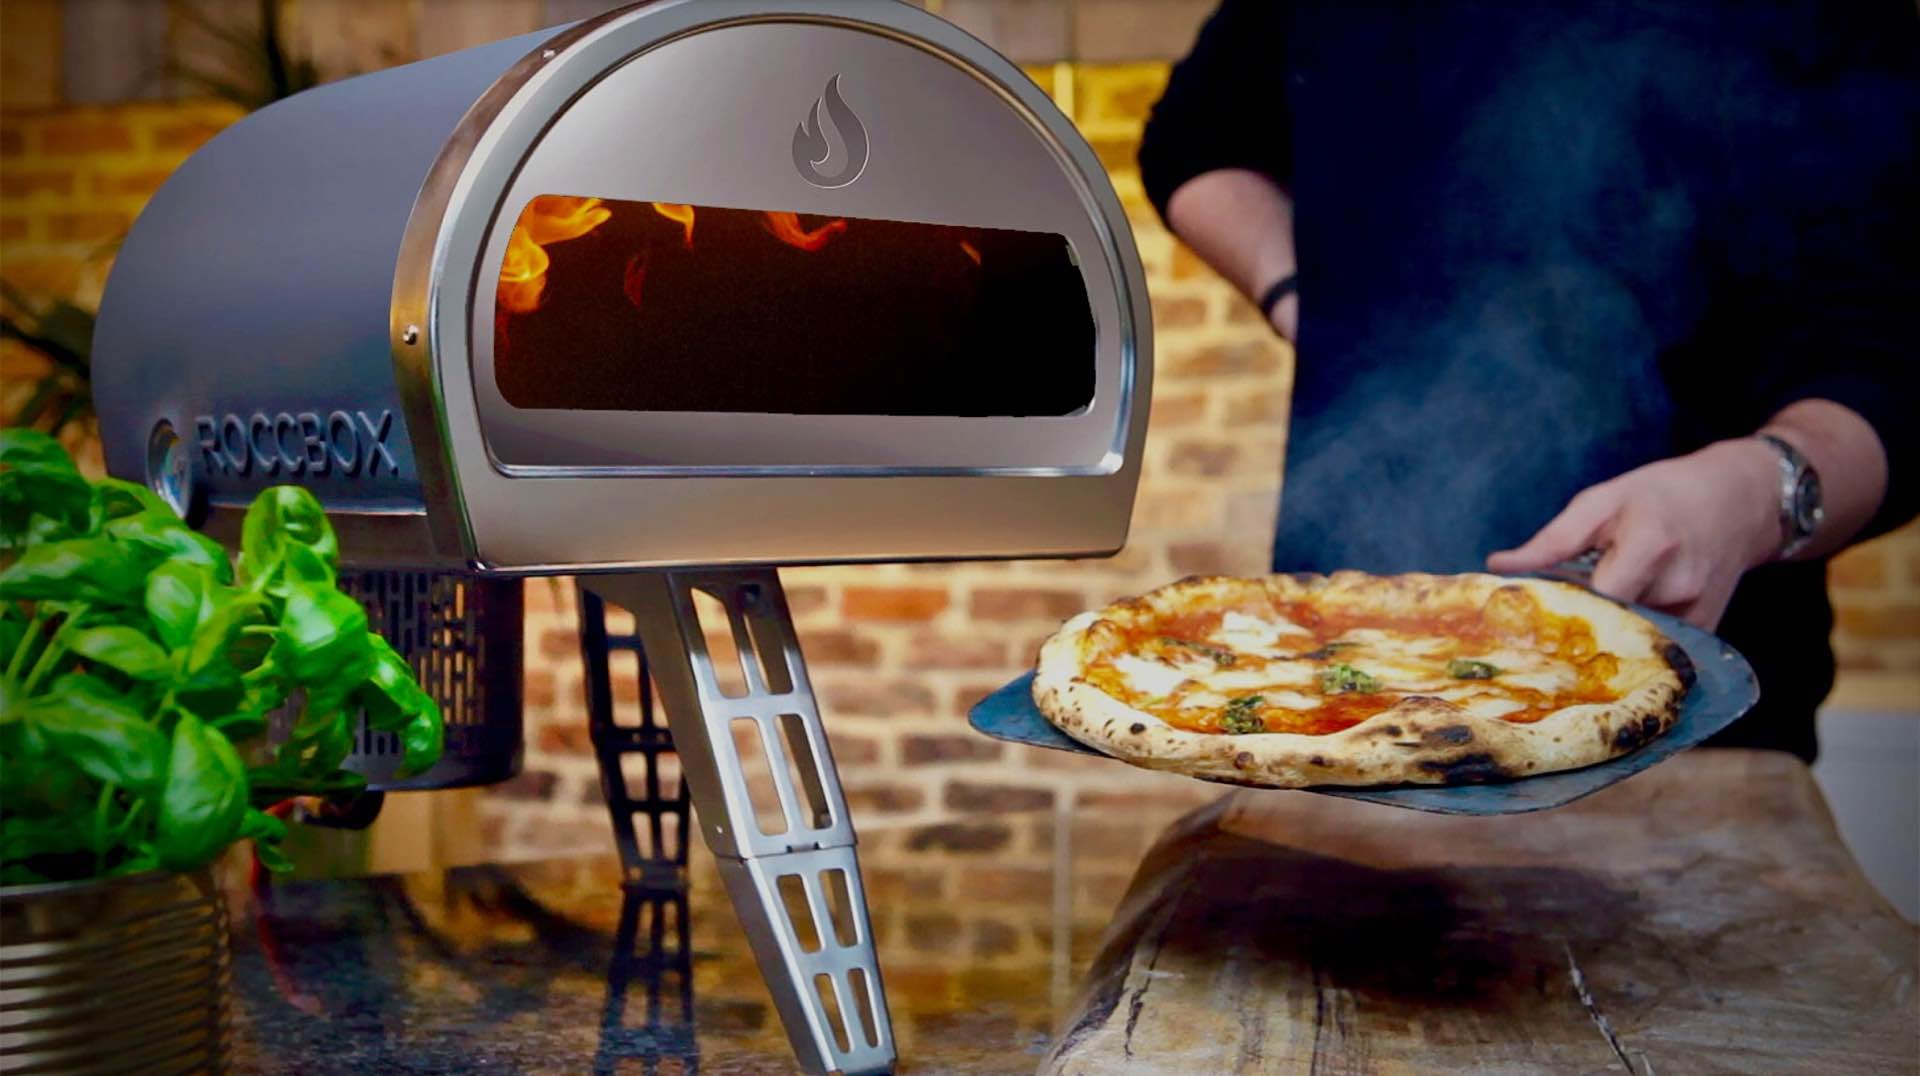 Roccbox outdoor pizza oven. ($599 + $49 shipping)